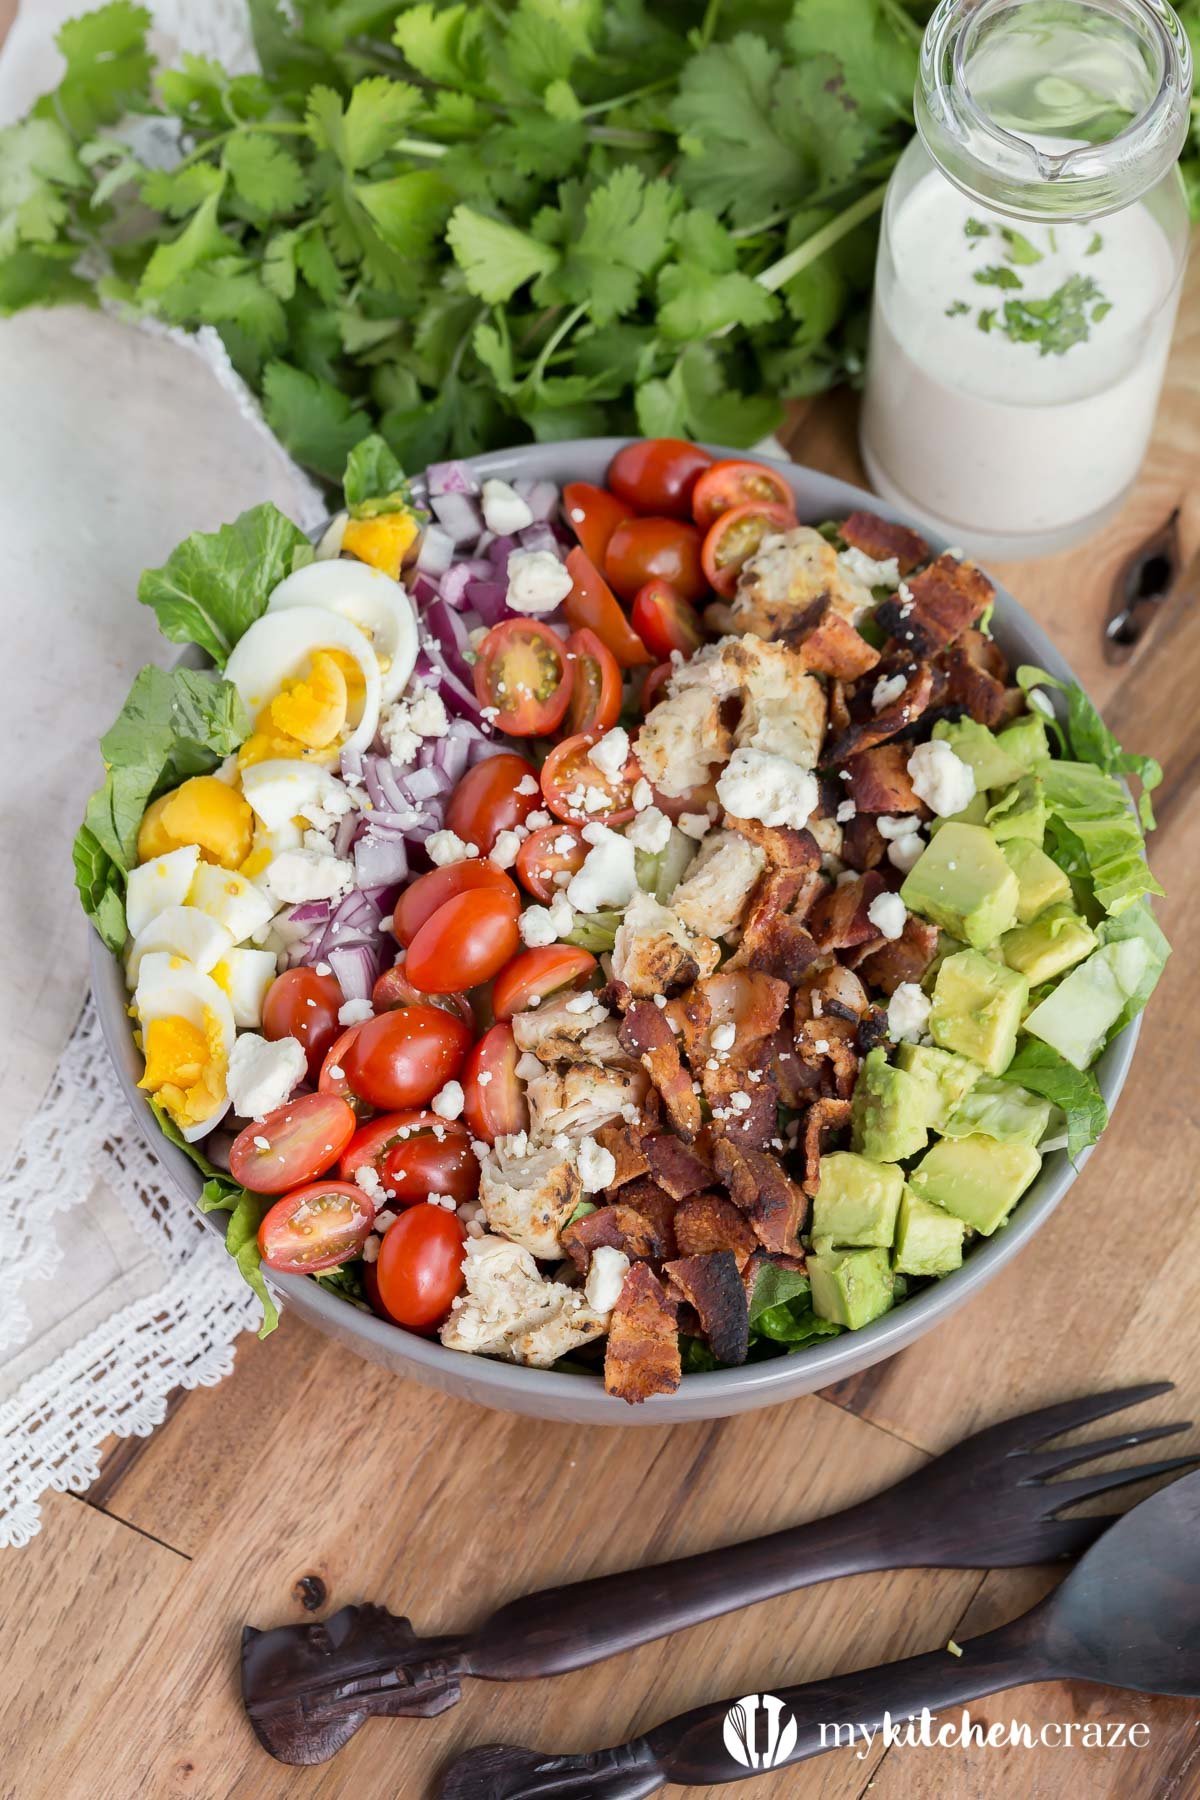 Cobb Salad ~ Crunchy veggies topped with blue cheese crumbles and your favorite dressing. This is one salad that you won't have a problem eating and enjoying!